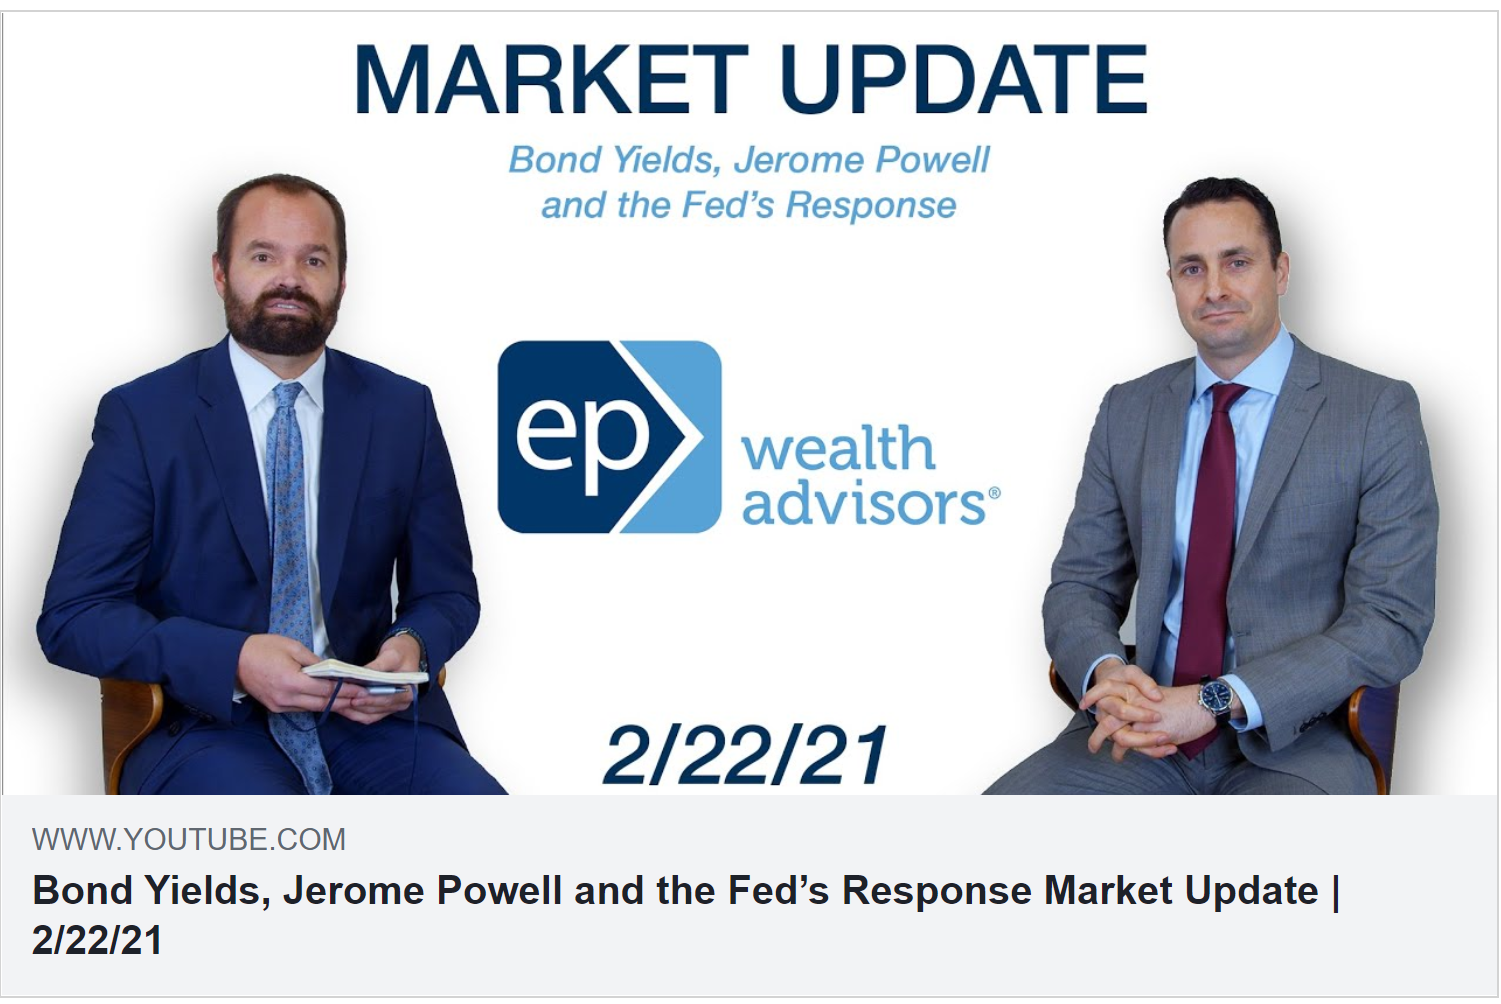 Bond Yields, Jerome Powell and the Fed's Response | Market Update 2/22/21